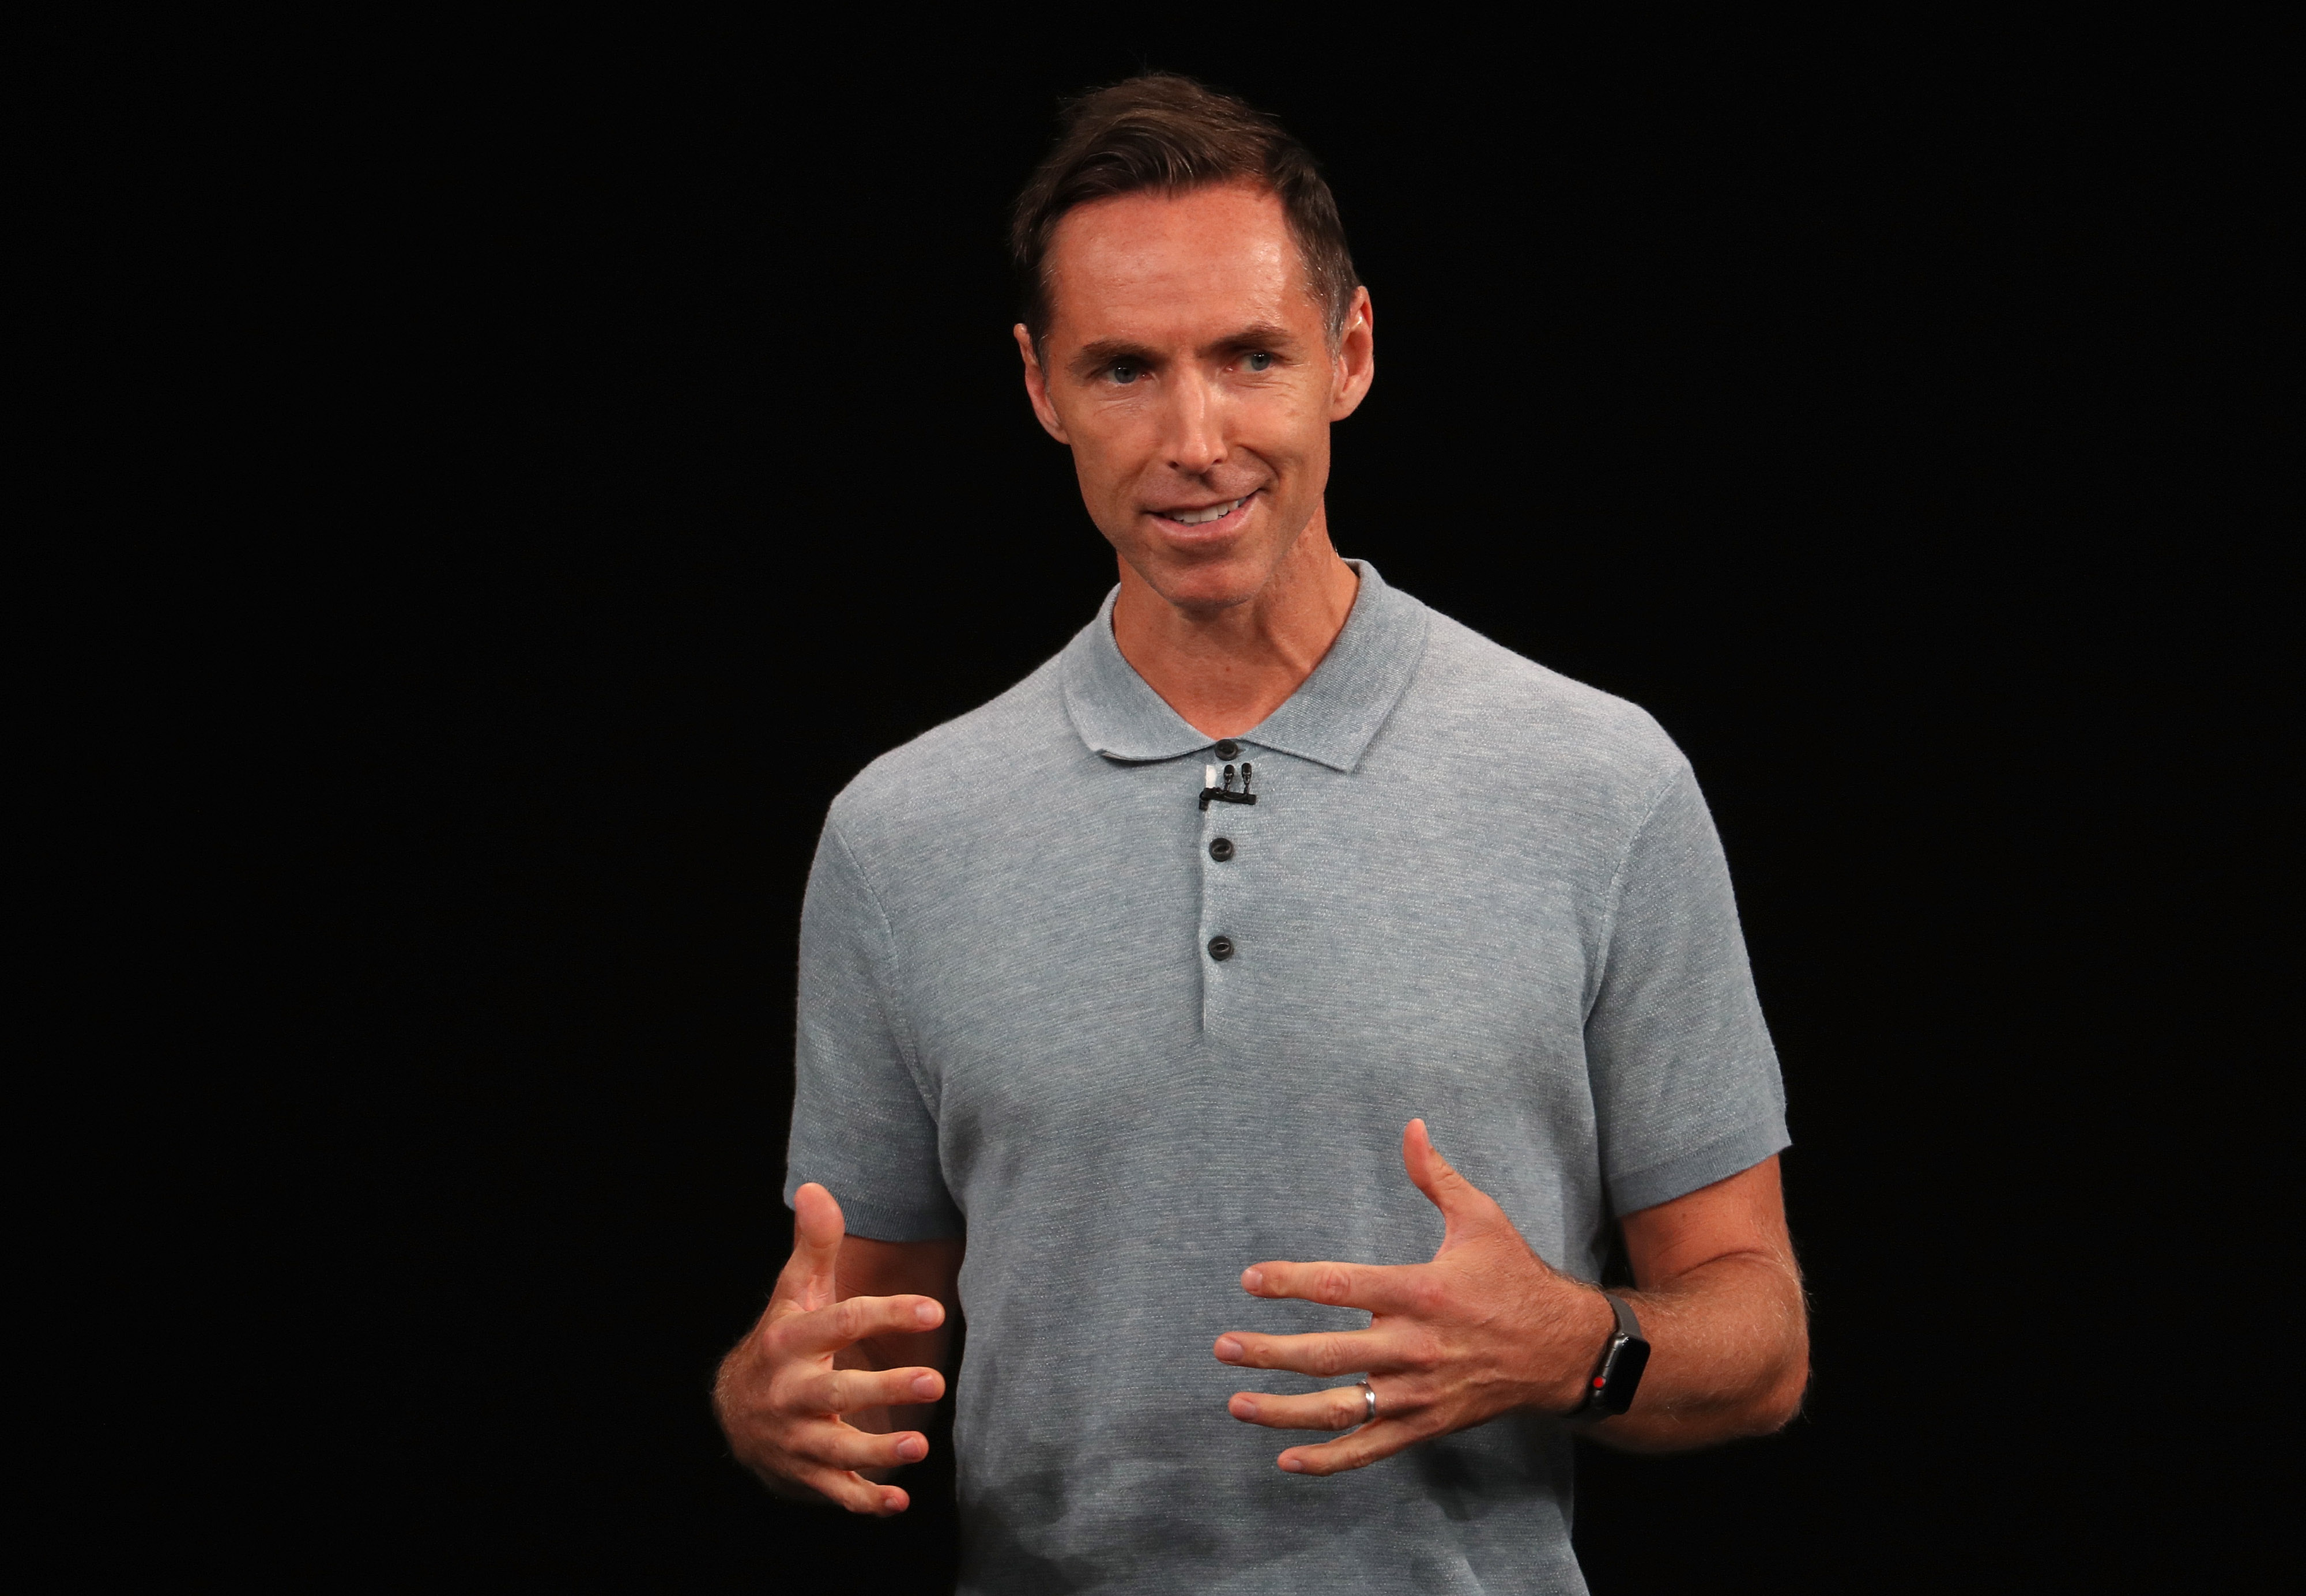 Steve Nash talking to the crowd at an Apple event